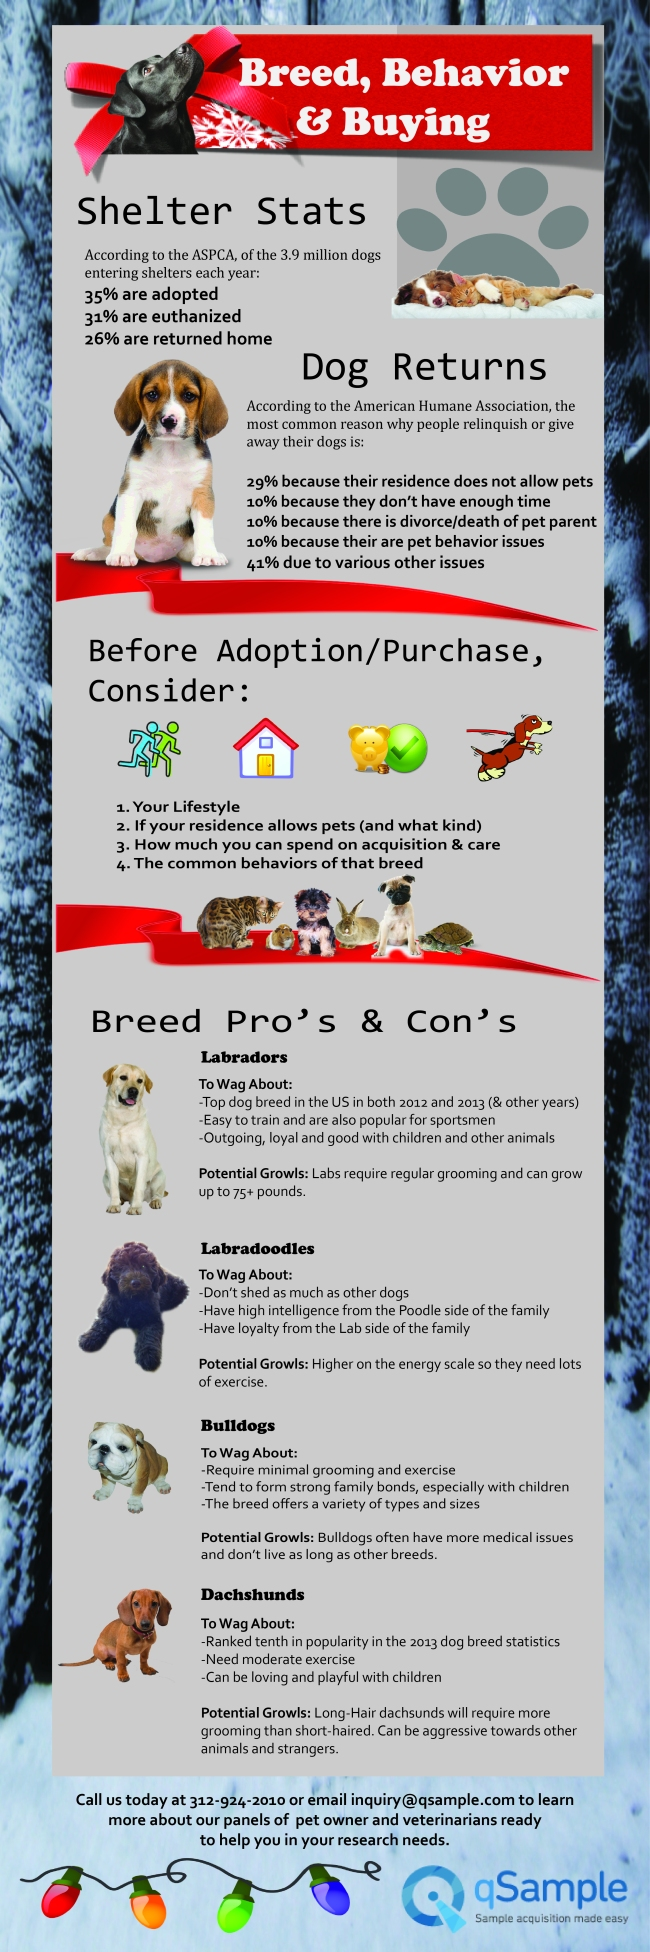 Breeds, Behavior and Buying